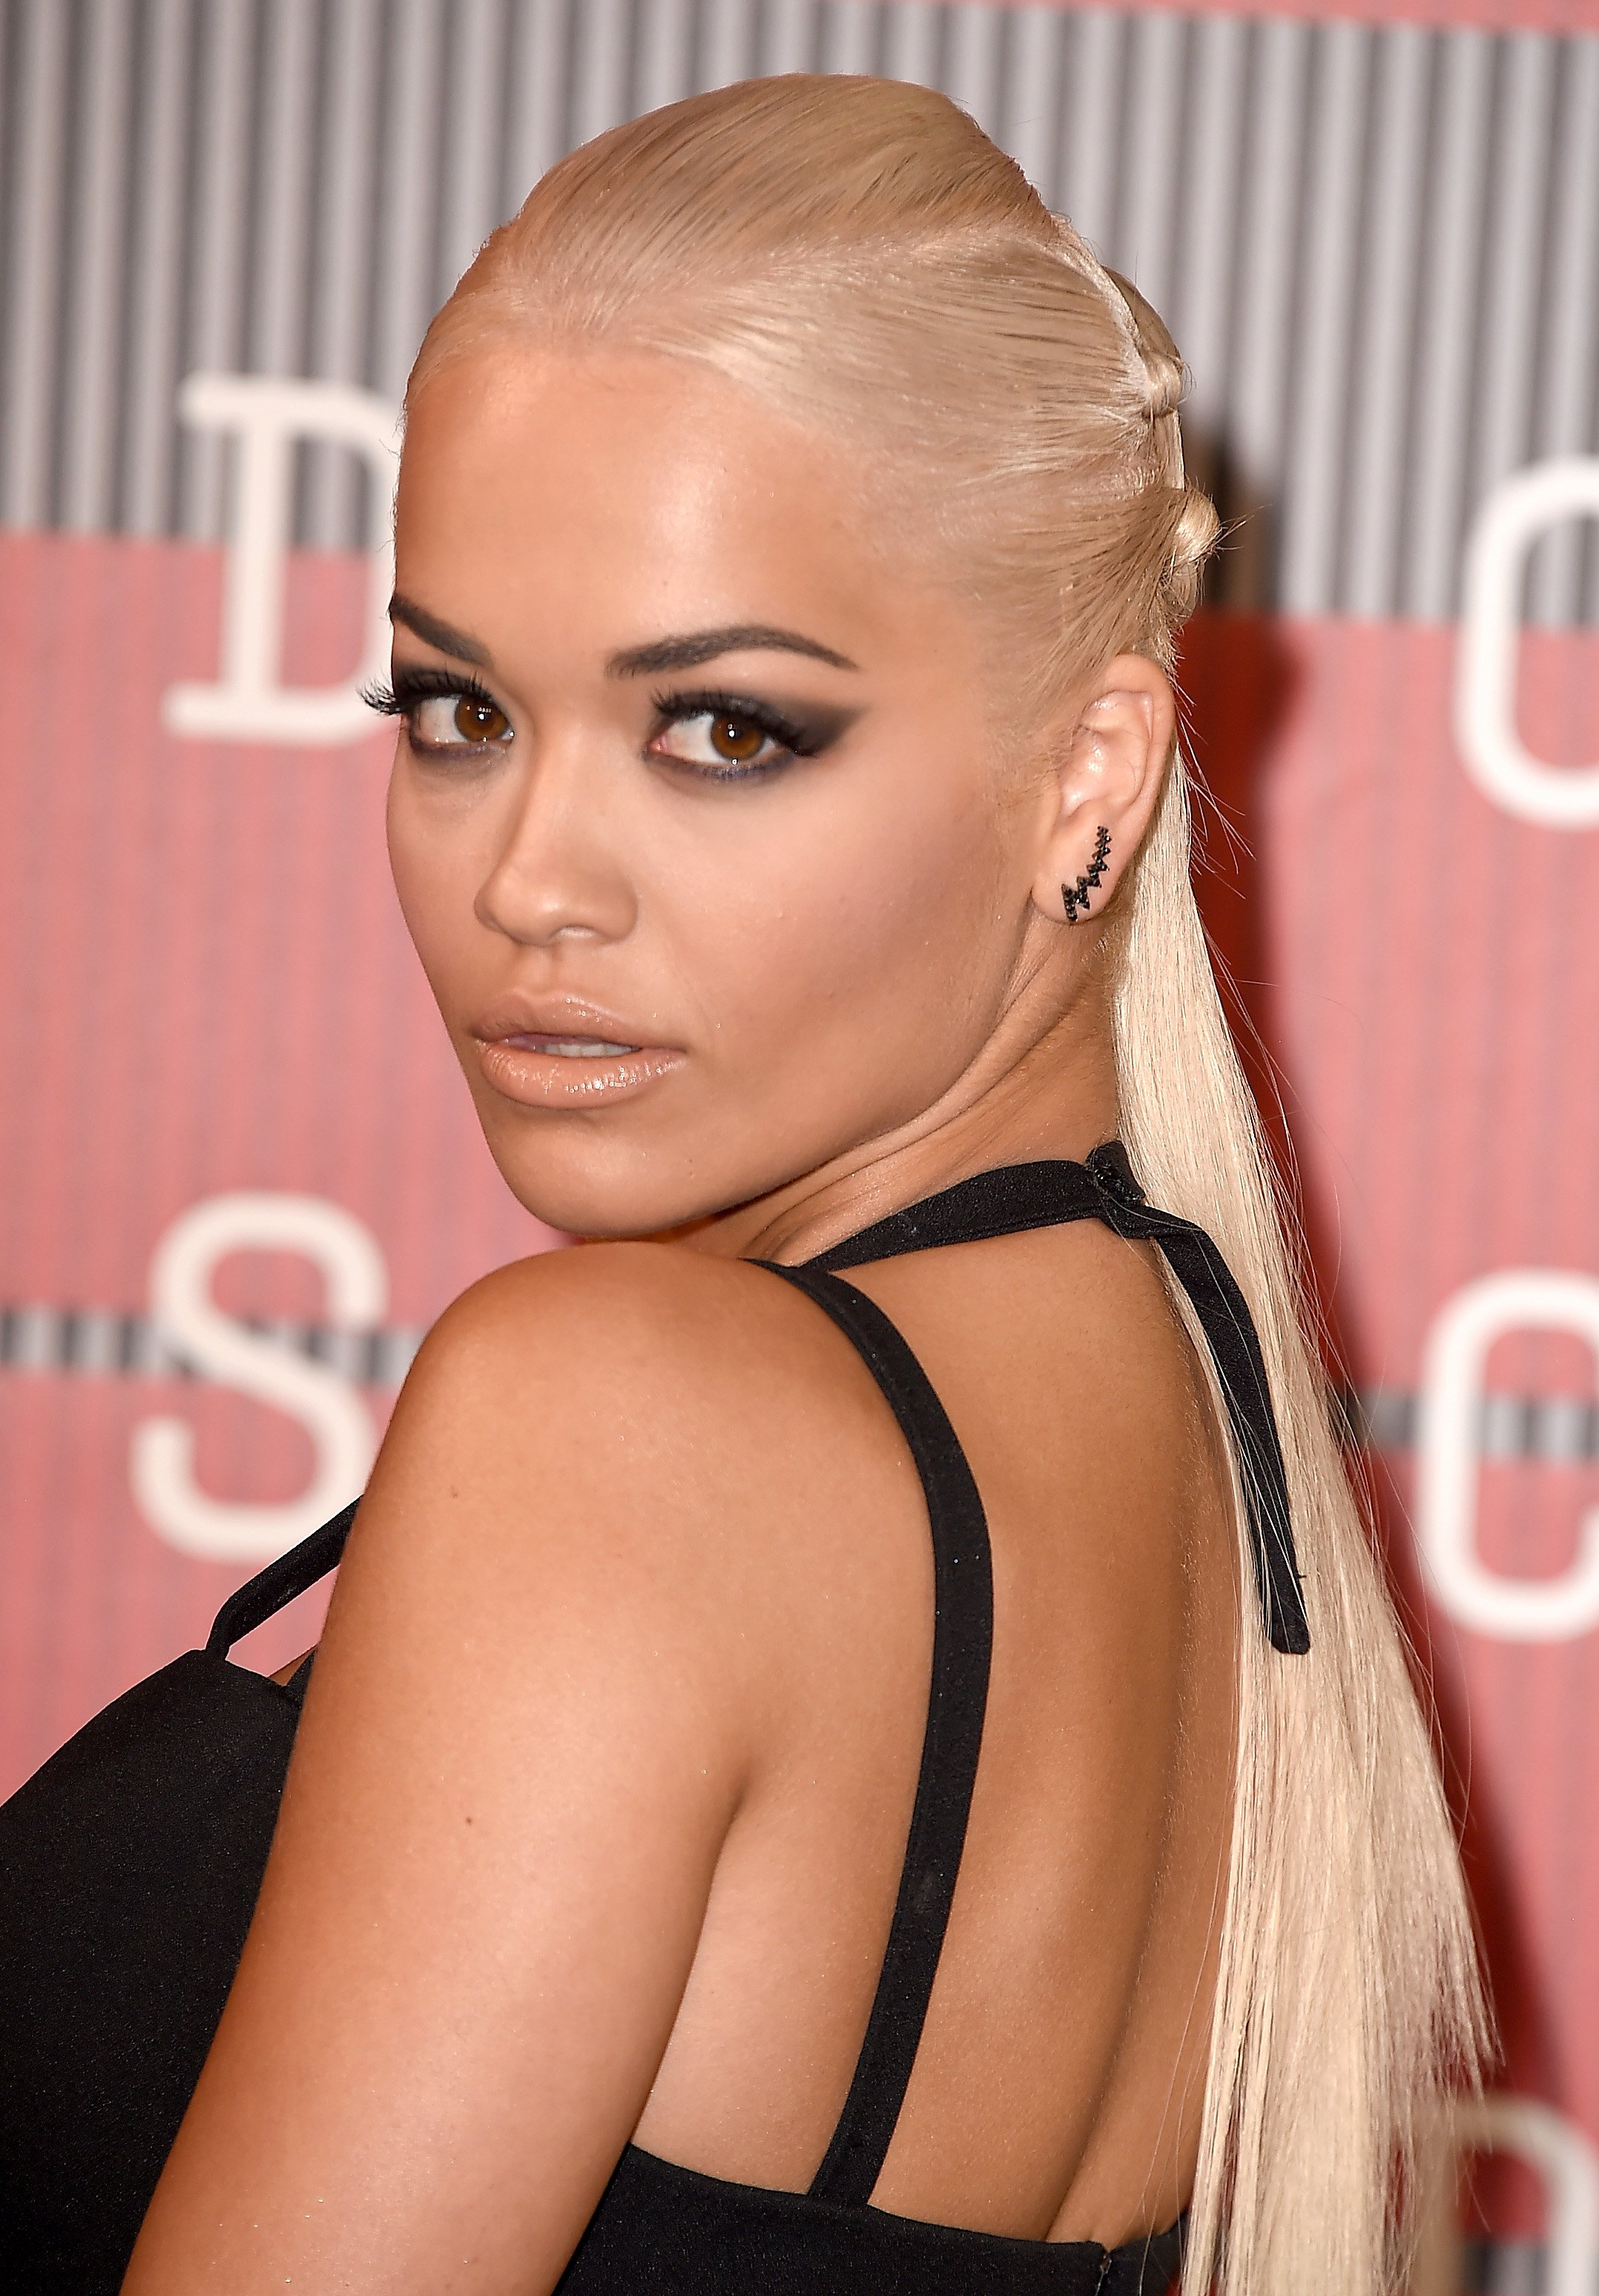 Rita Ora Wallpapers hd